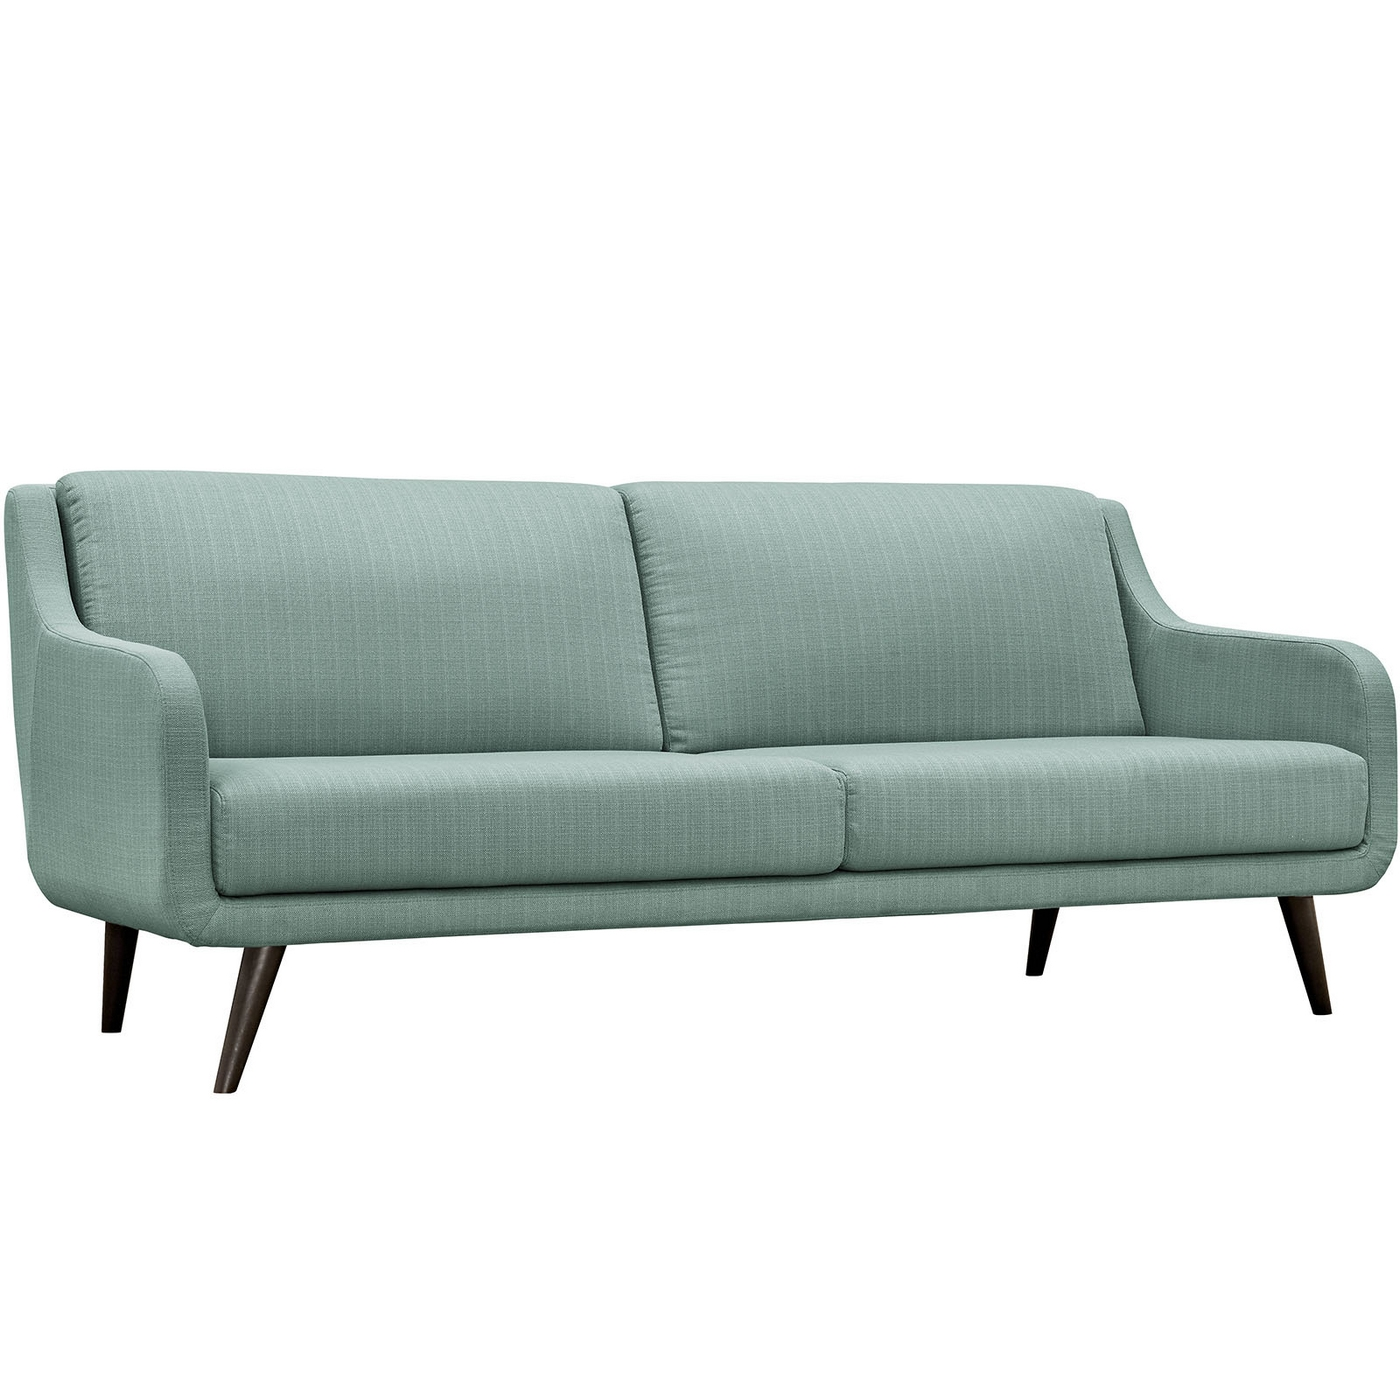 Verve Mid Century Modern Upholstered Sofa With Wood Frame Laguna